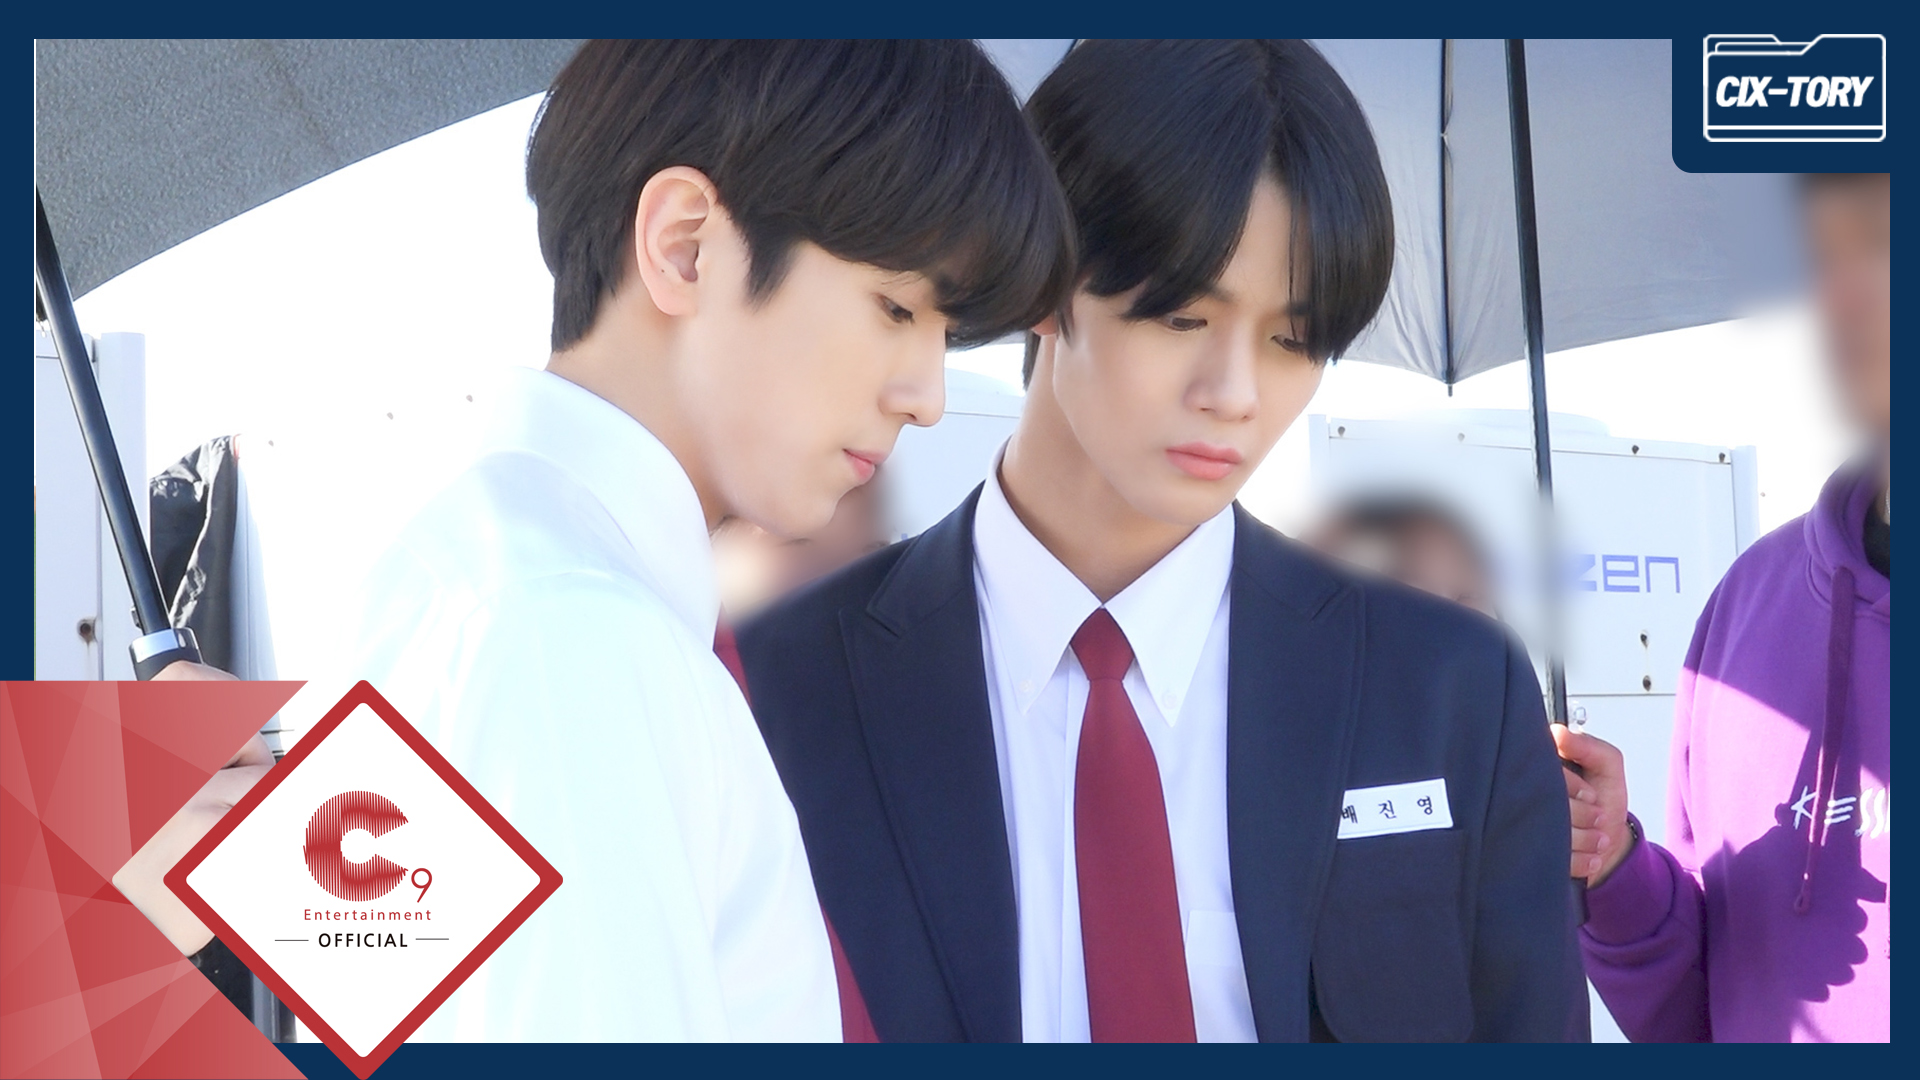 [CIX-tory] STORY. 27 'Hello, Strange Place' Story Film behind - part 1